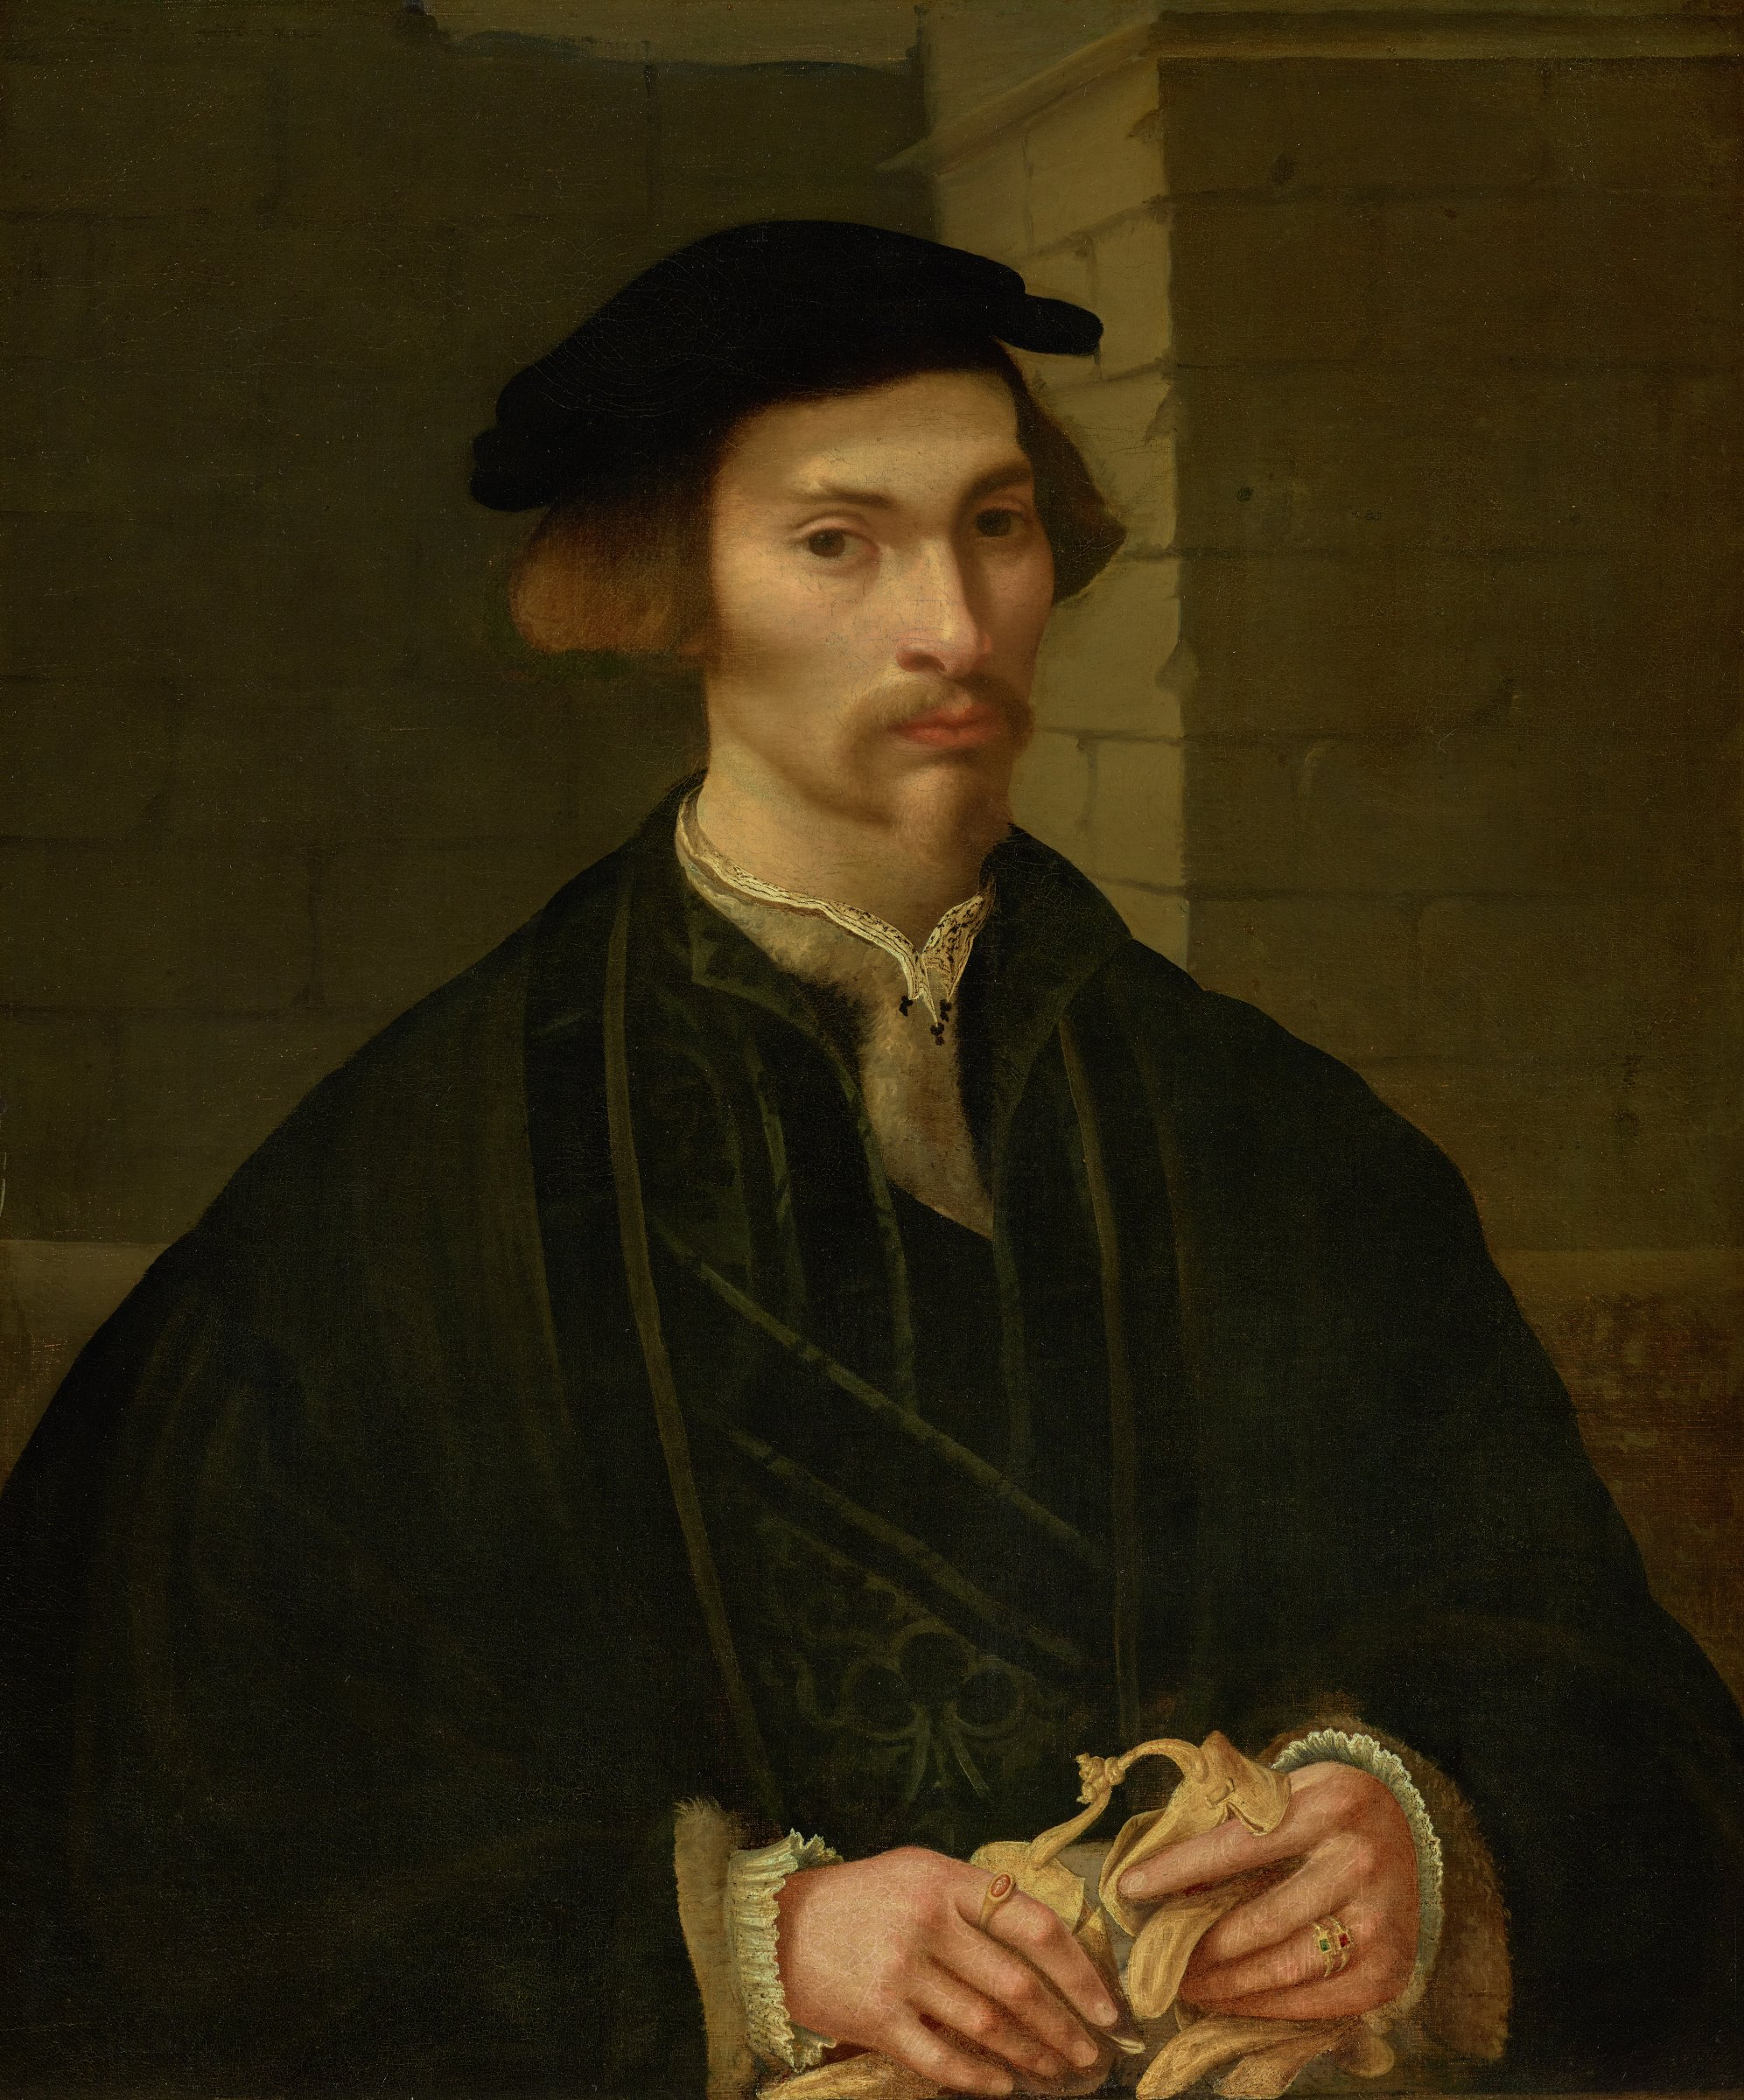 In this three-quarter length portrait, a man is pictured wearing a dark colored hat and holding a pair of white gloves.